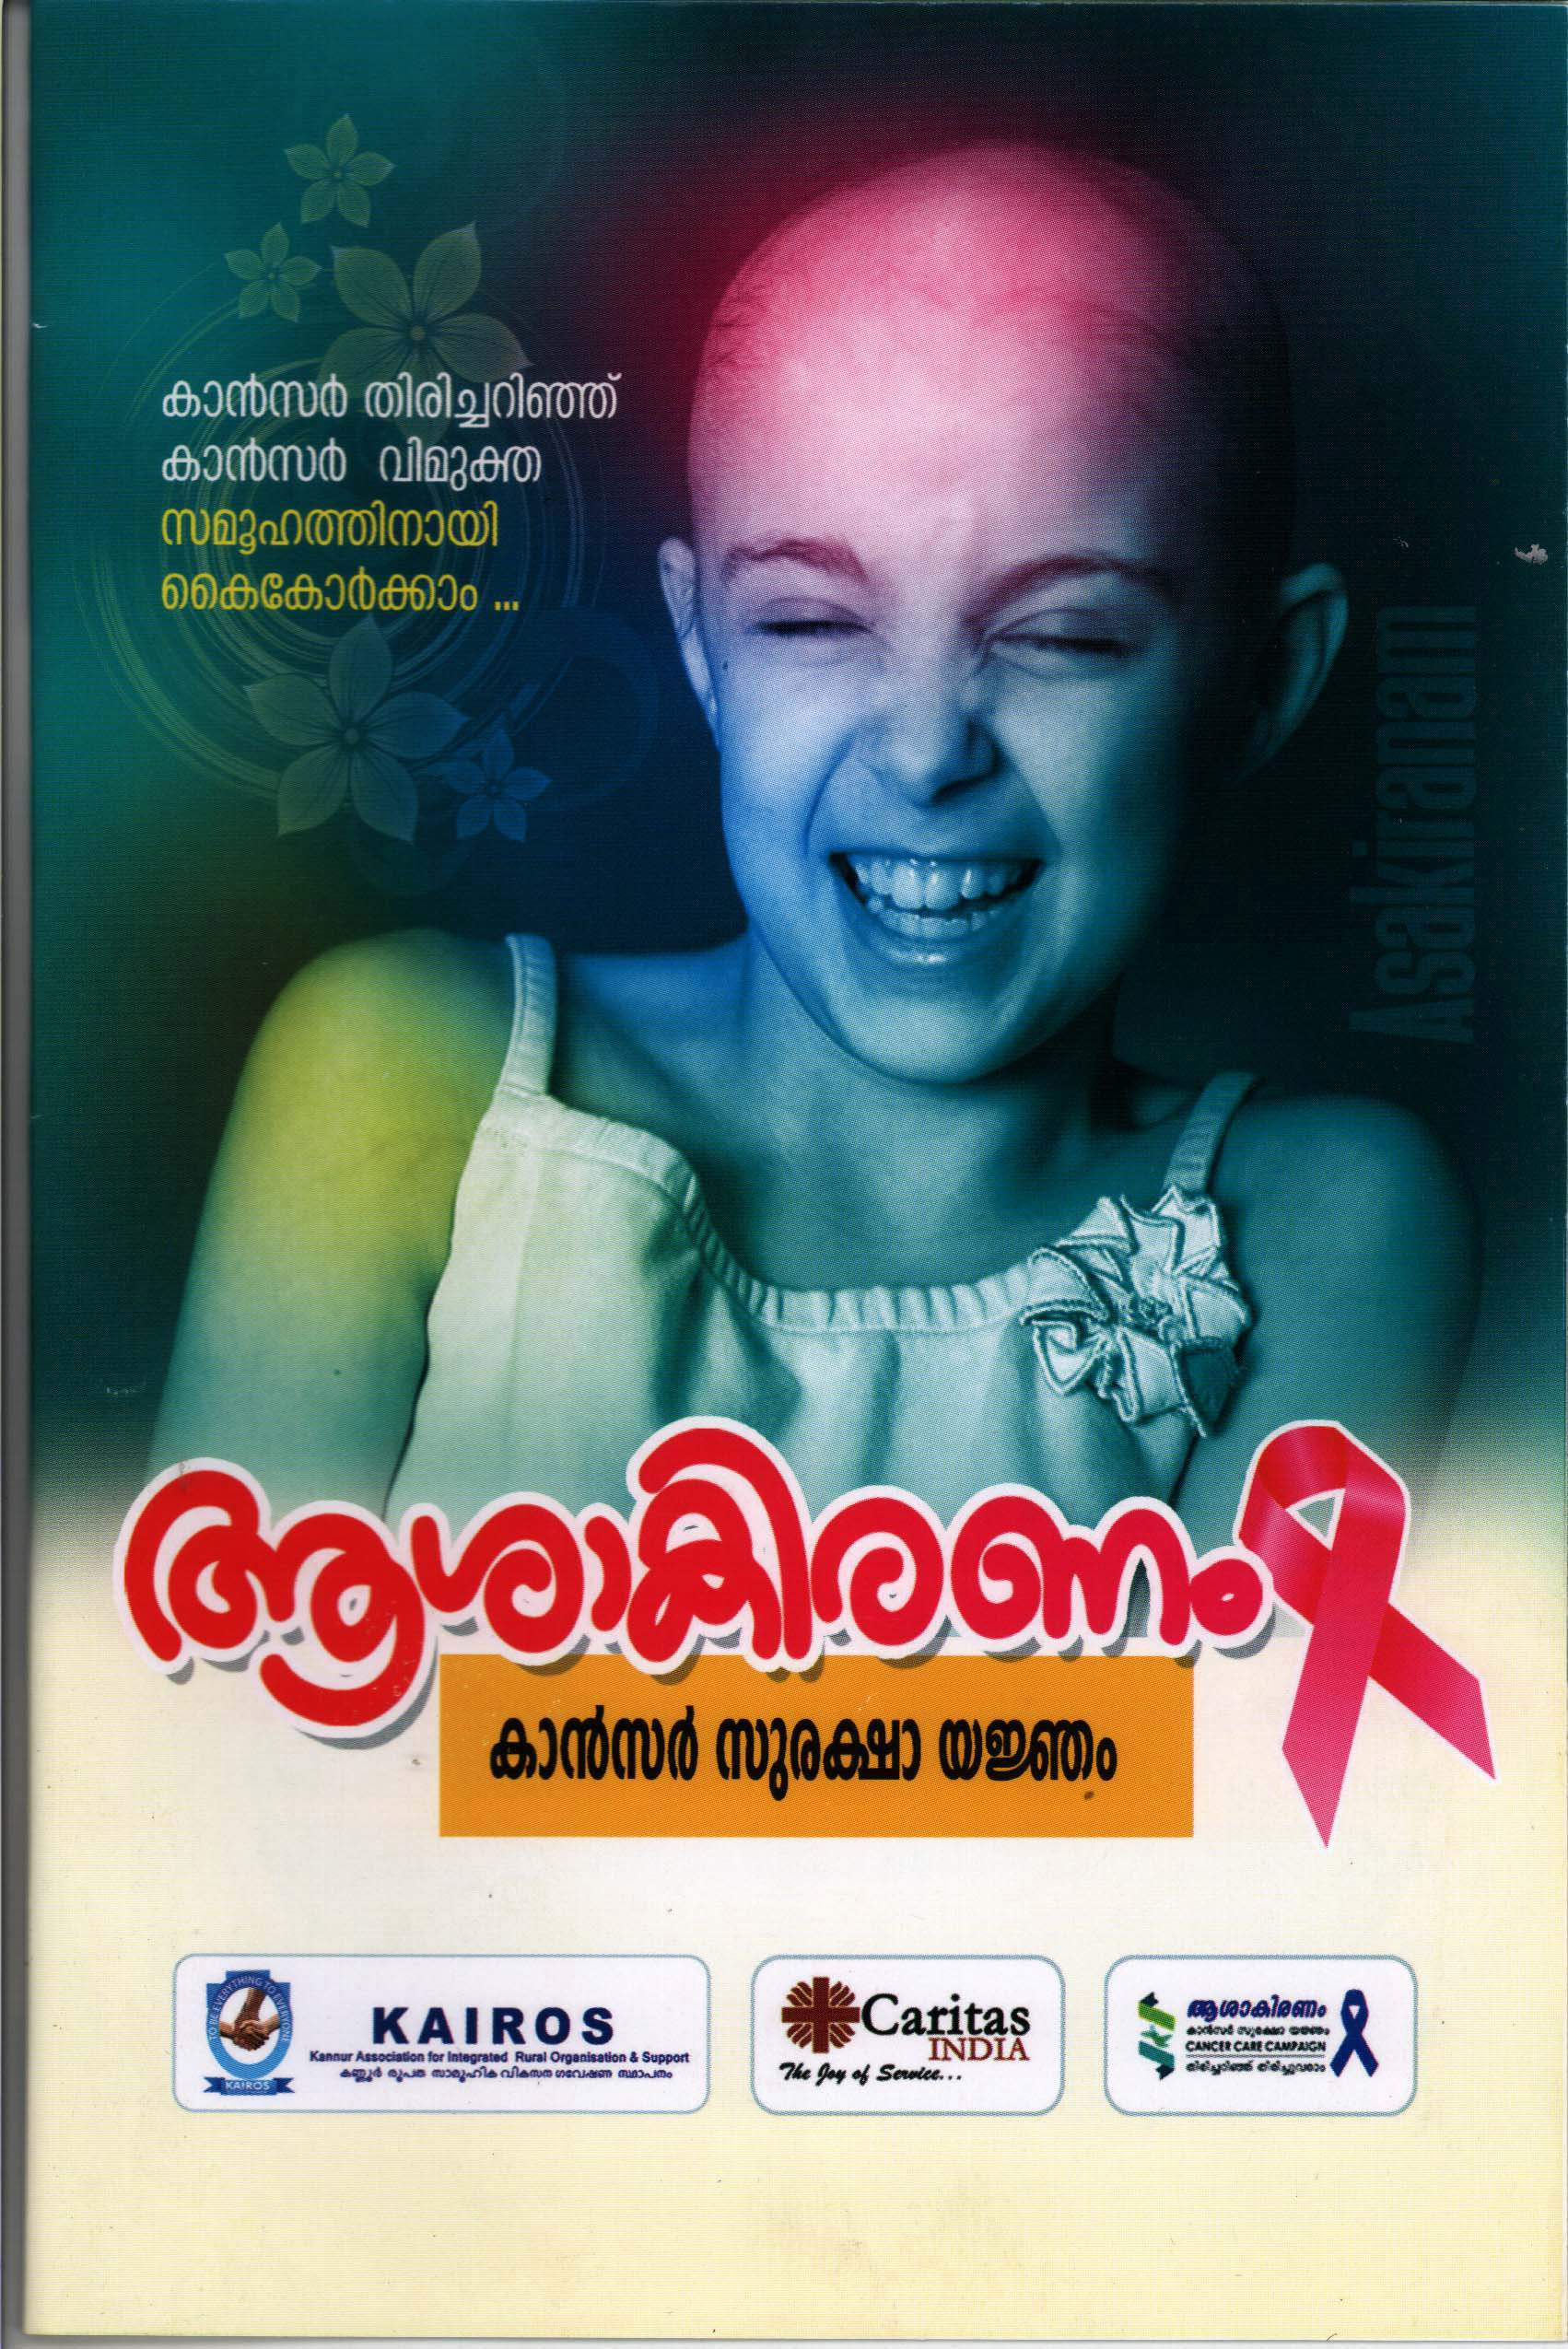 Asakiranam (Cancer Protection Campaign)